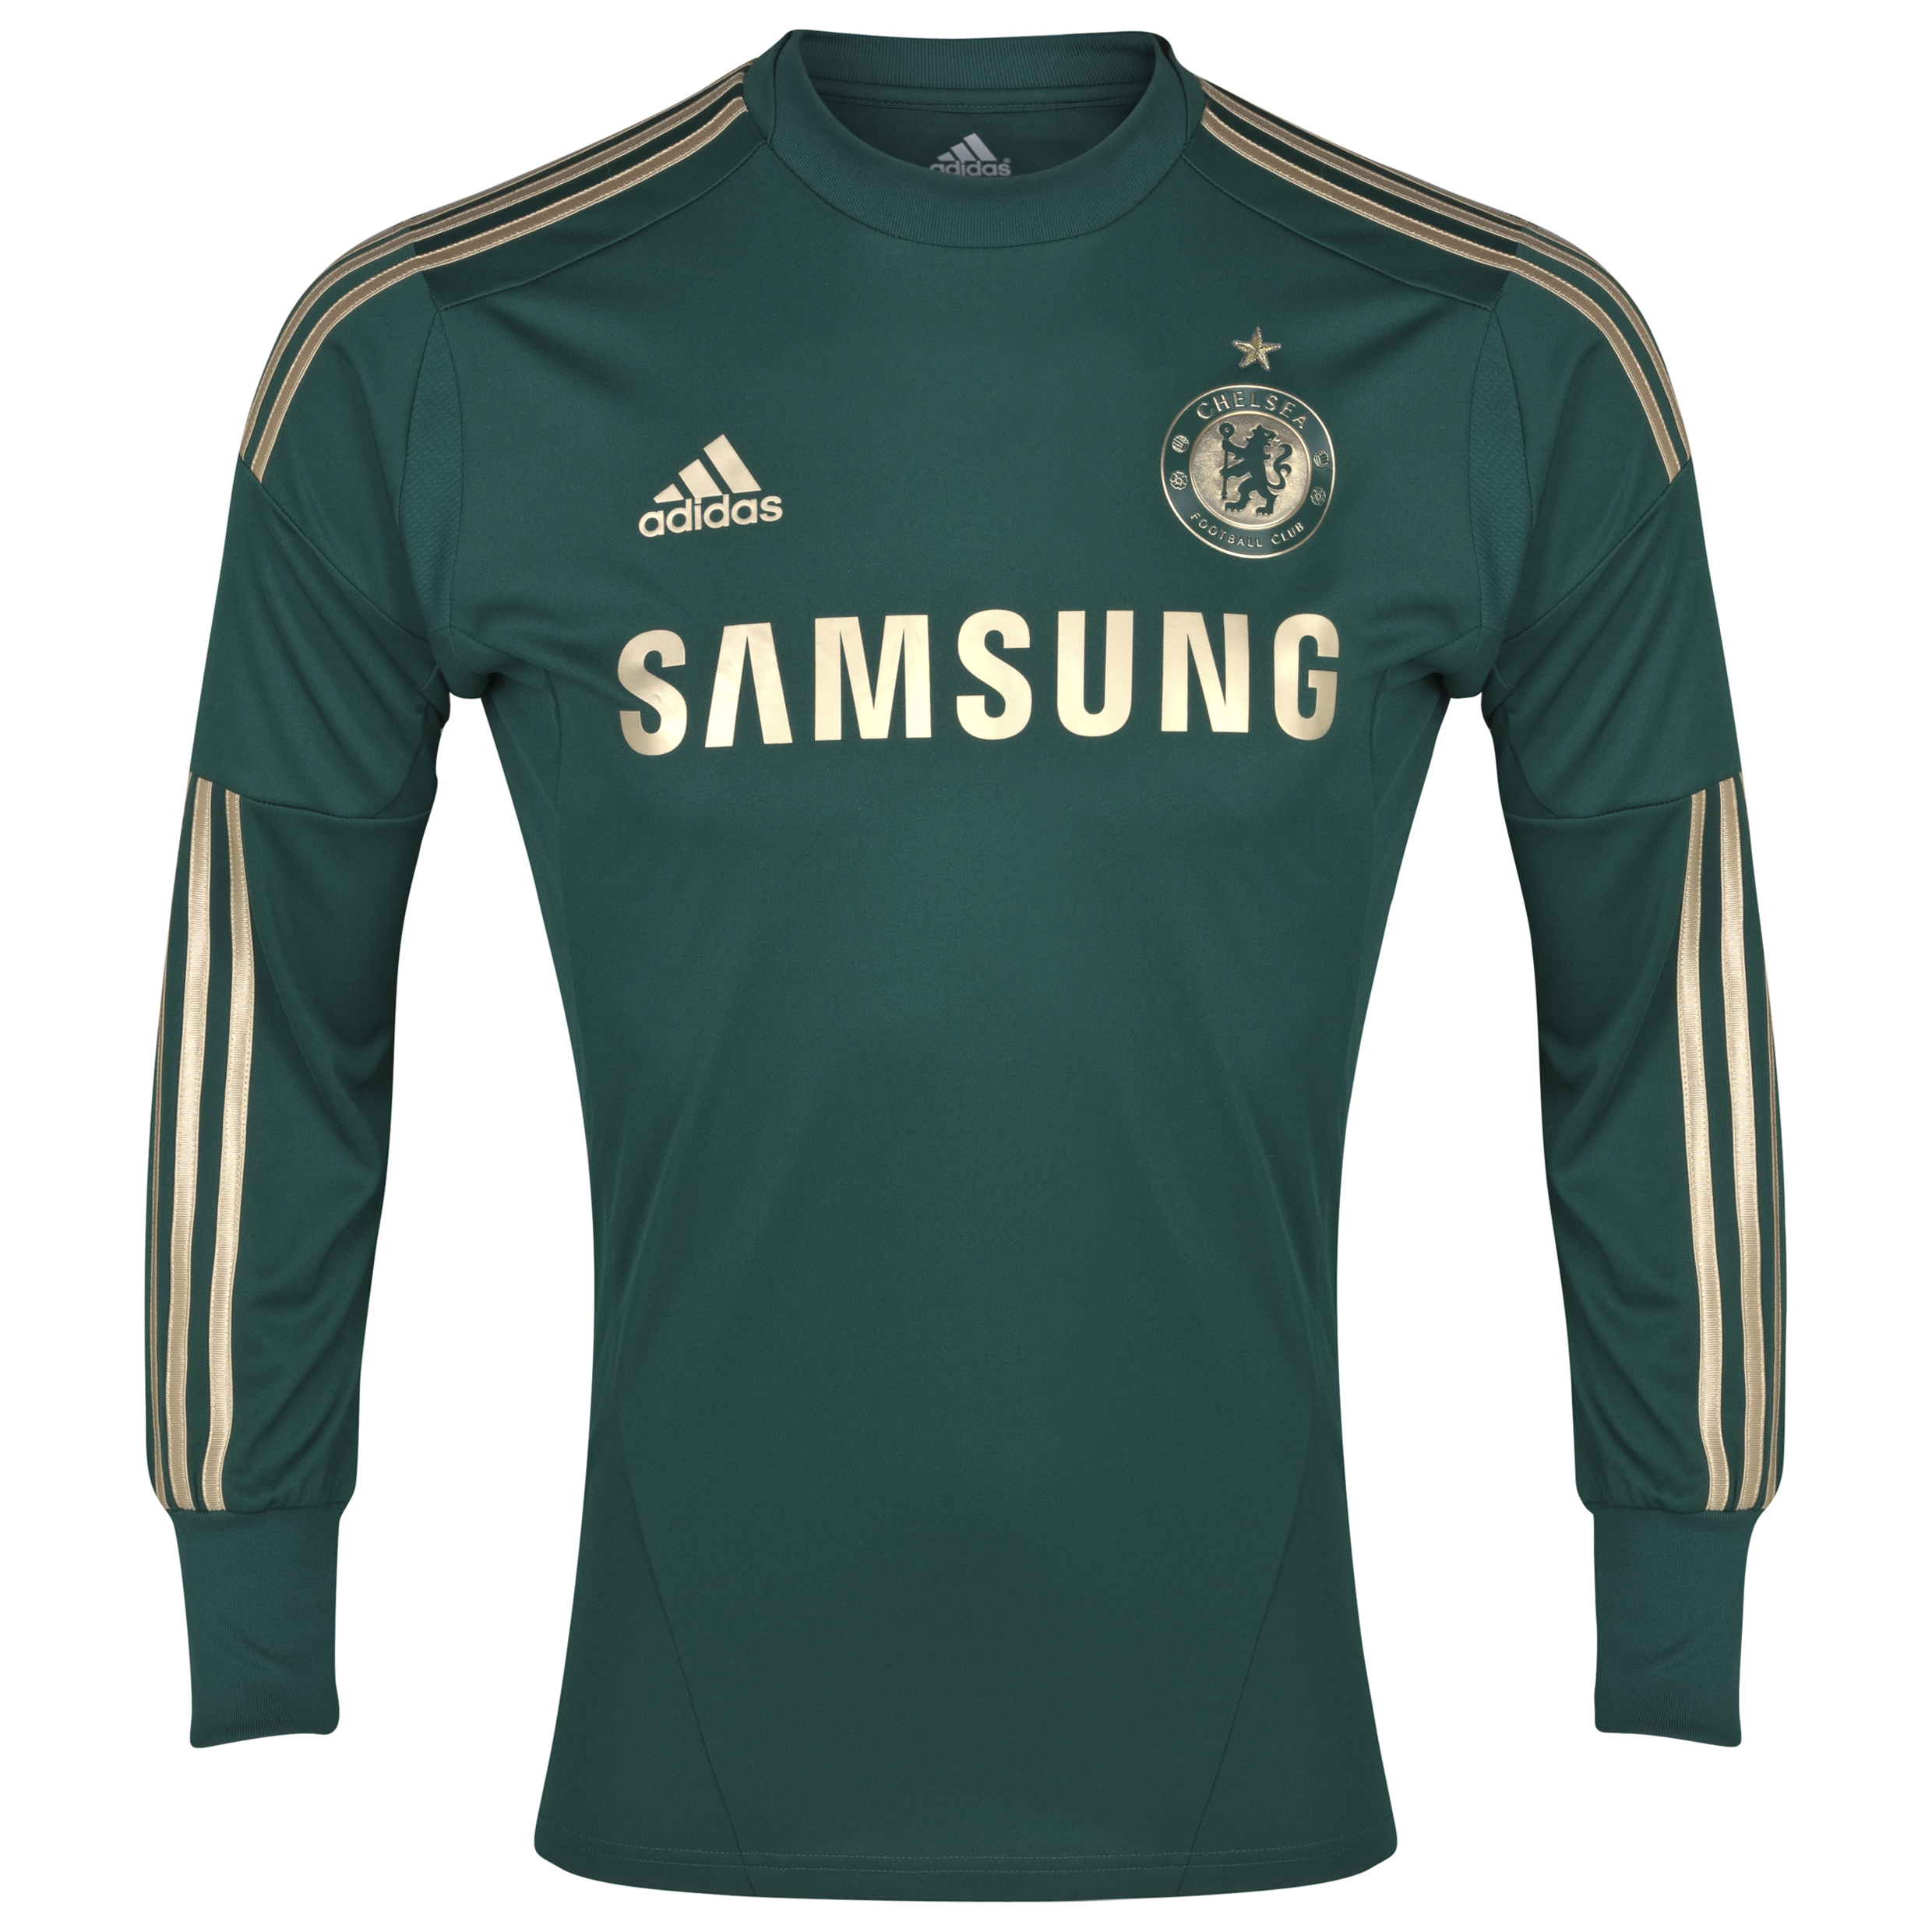 Chelsea Goalkeeper Shirt 2012/14 Including Gold Star